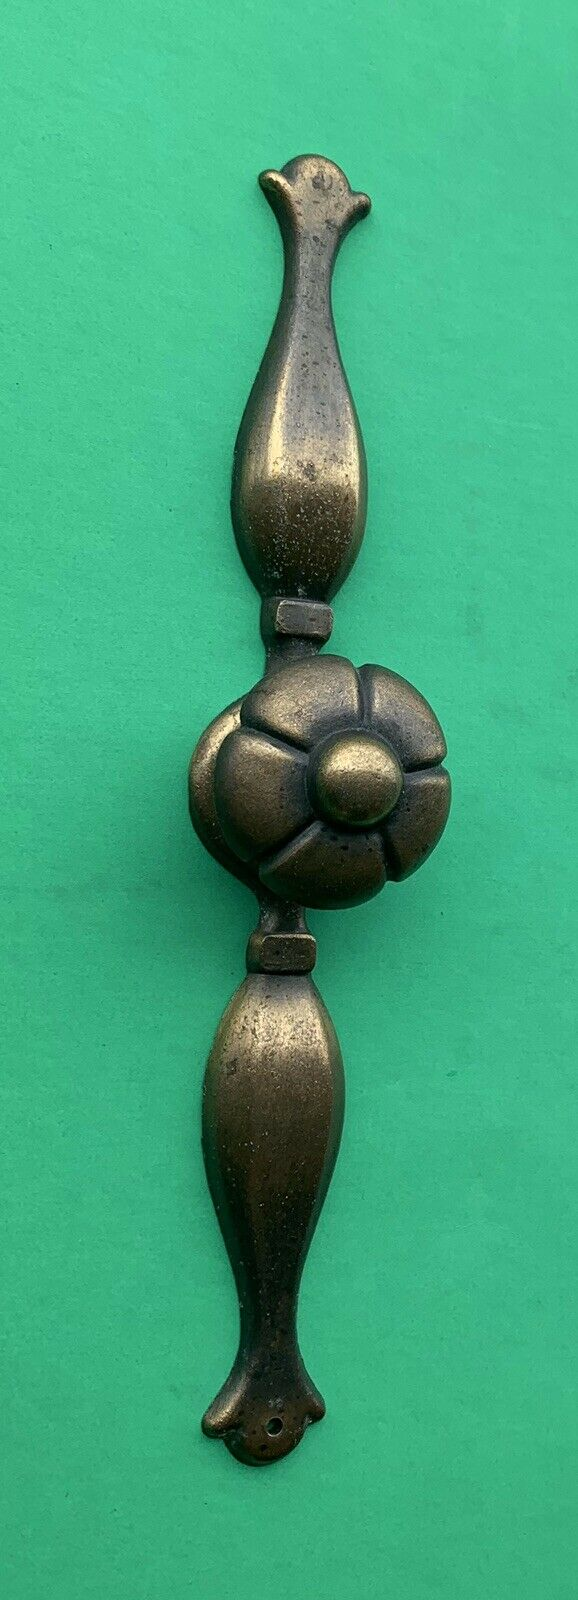 French Provincial Antique Hardware Vintage Drawer Pull Flower Knob Brass Cabinet